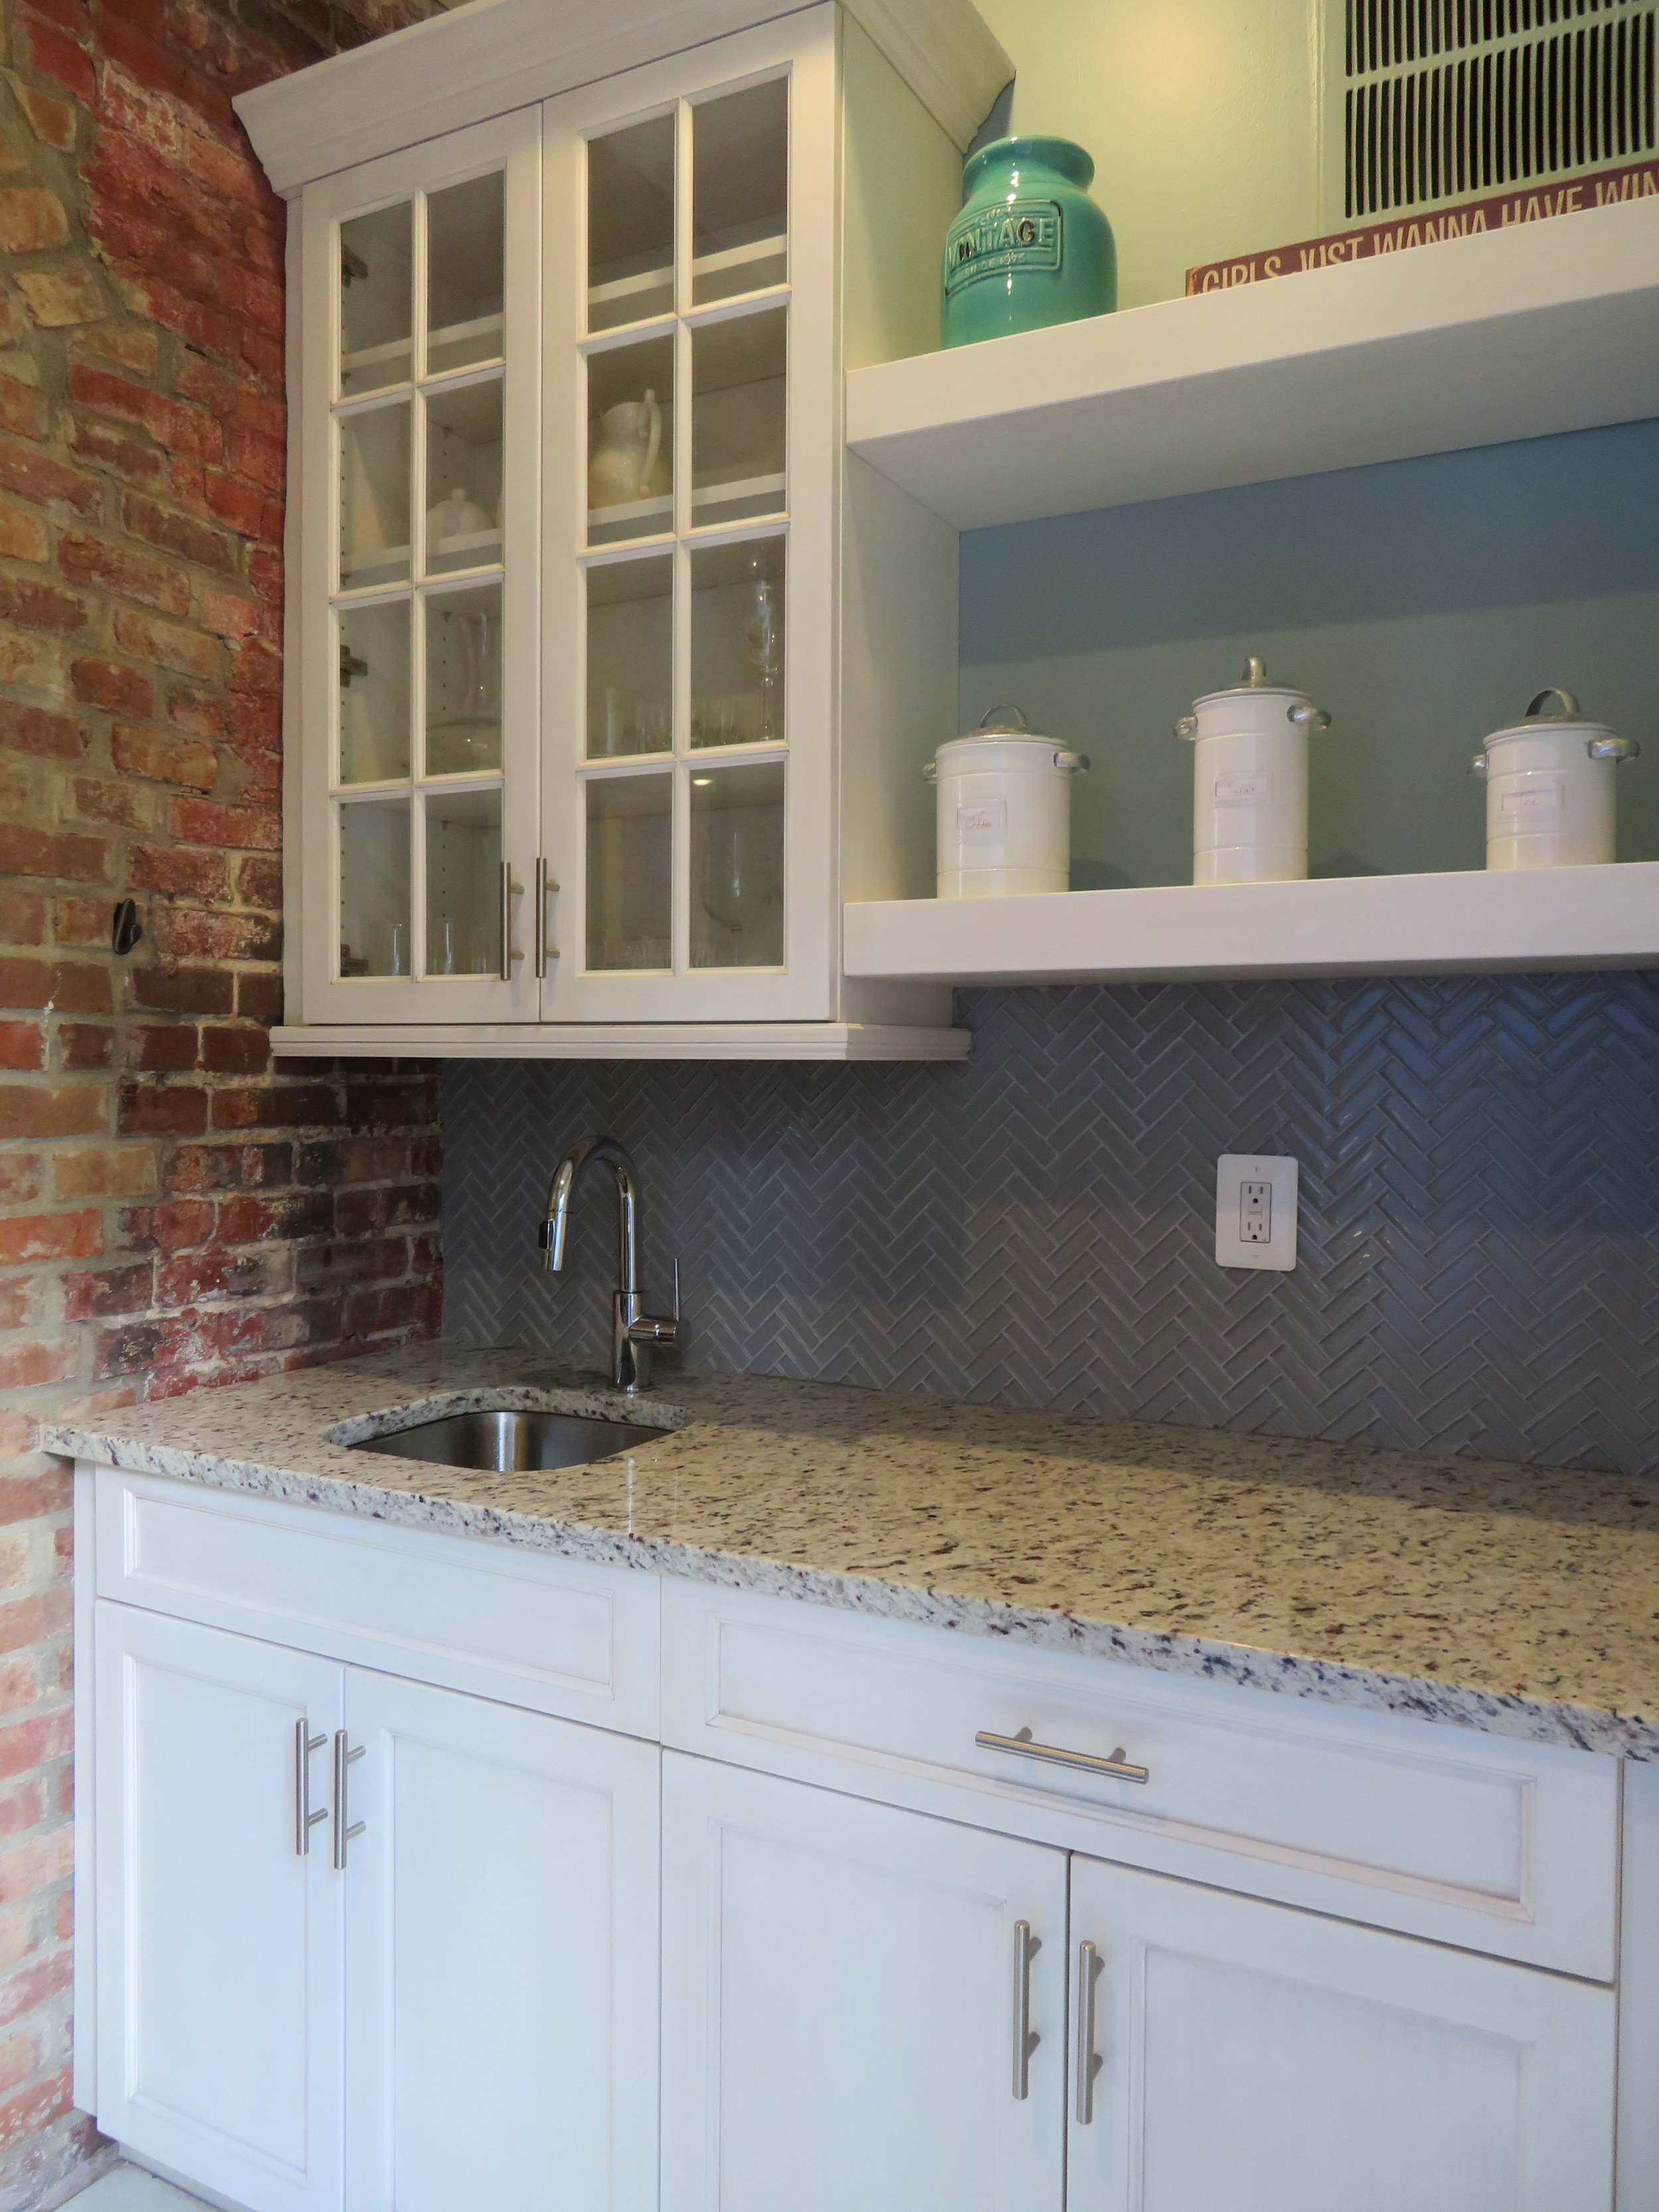 Old Towne Design Build can make use of every nook and crannies. -